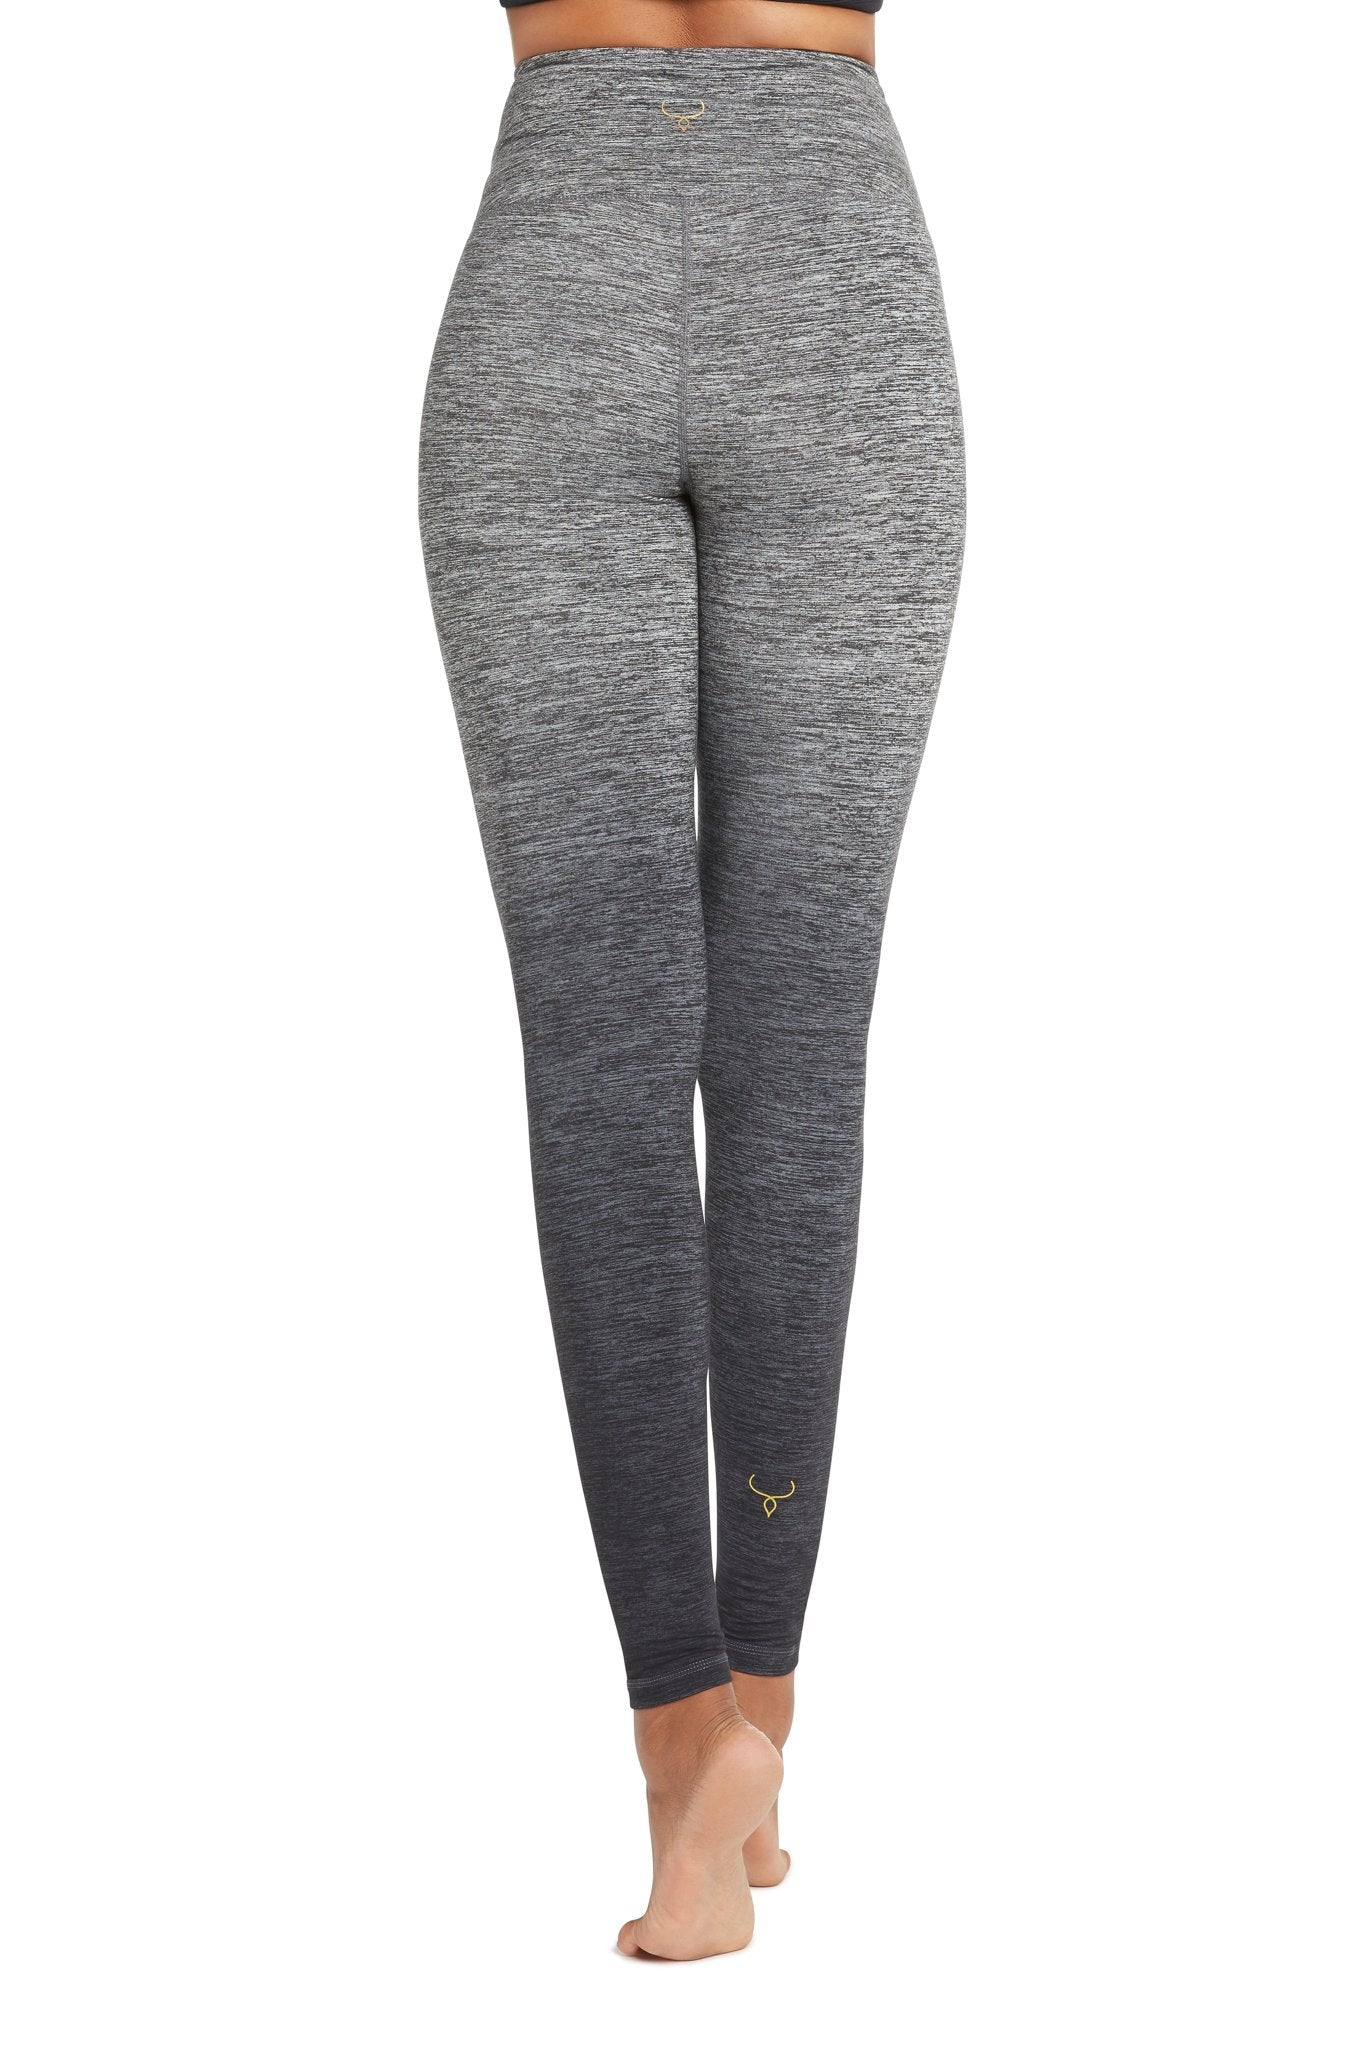 Bella I High-Waist Women's Activewear Leggings